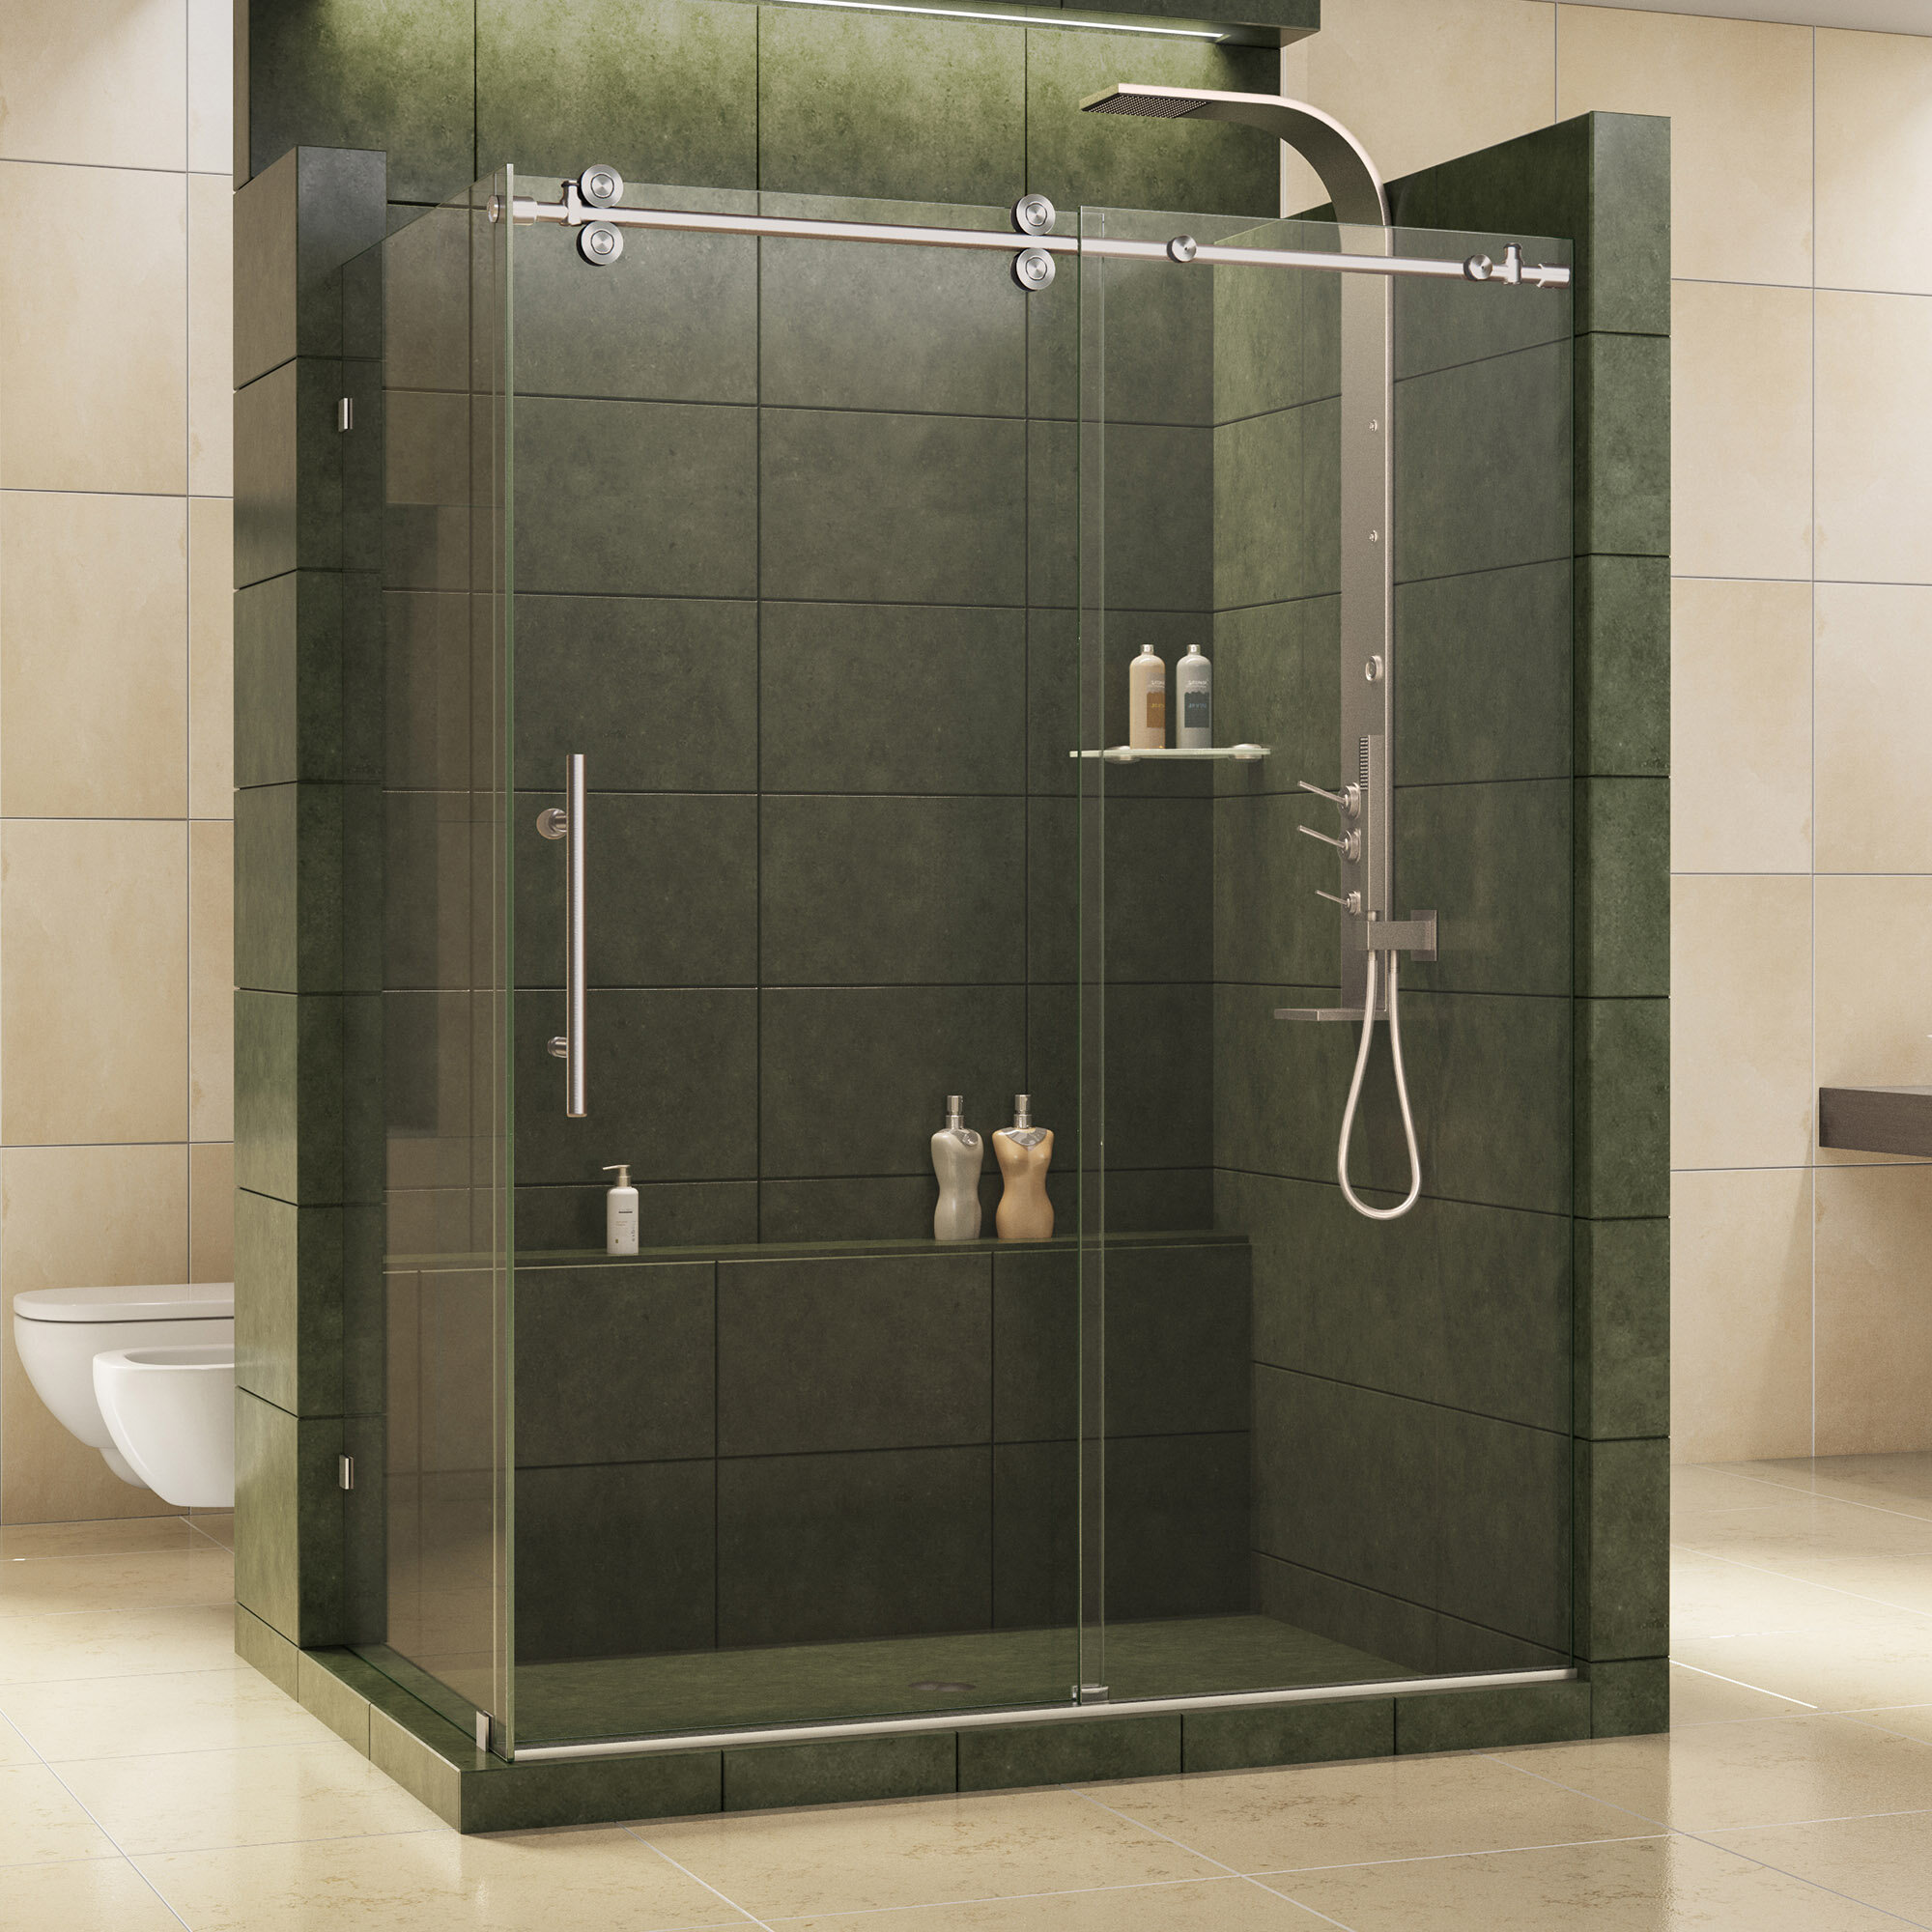 bar door frameless sliding for towel installation enigma reviews of shower doors useful designs